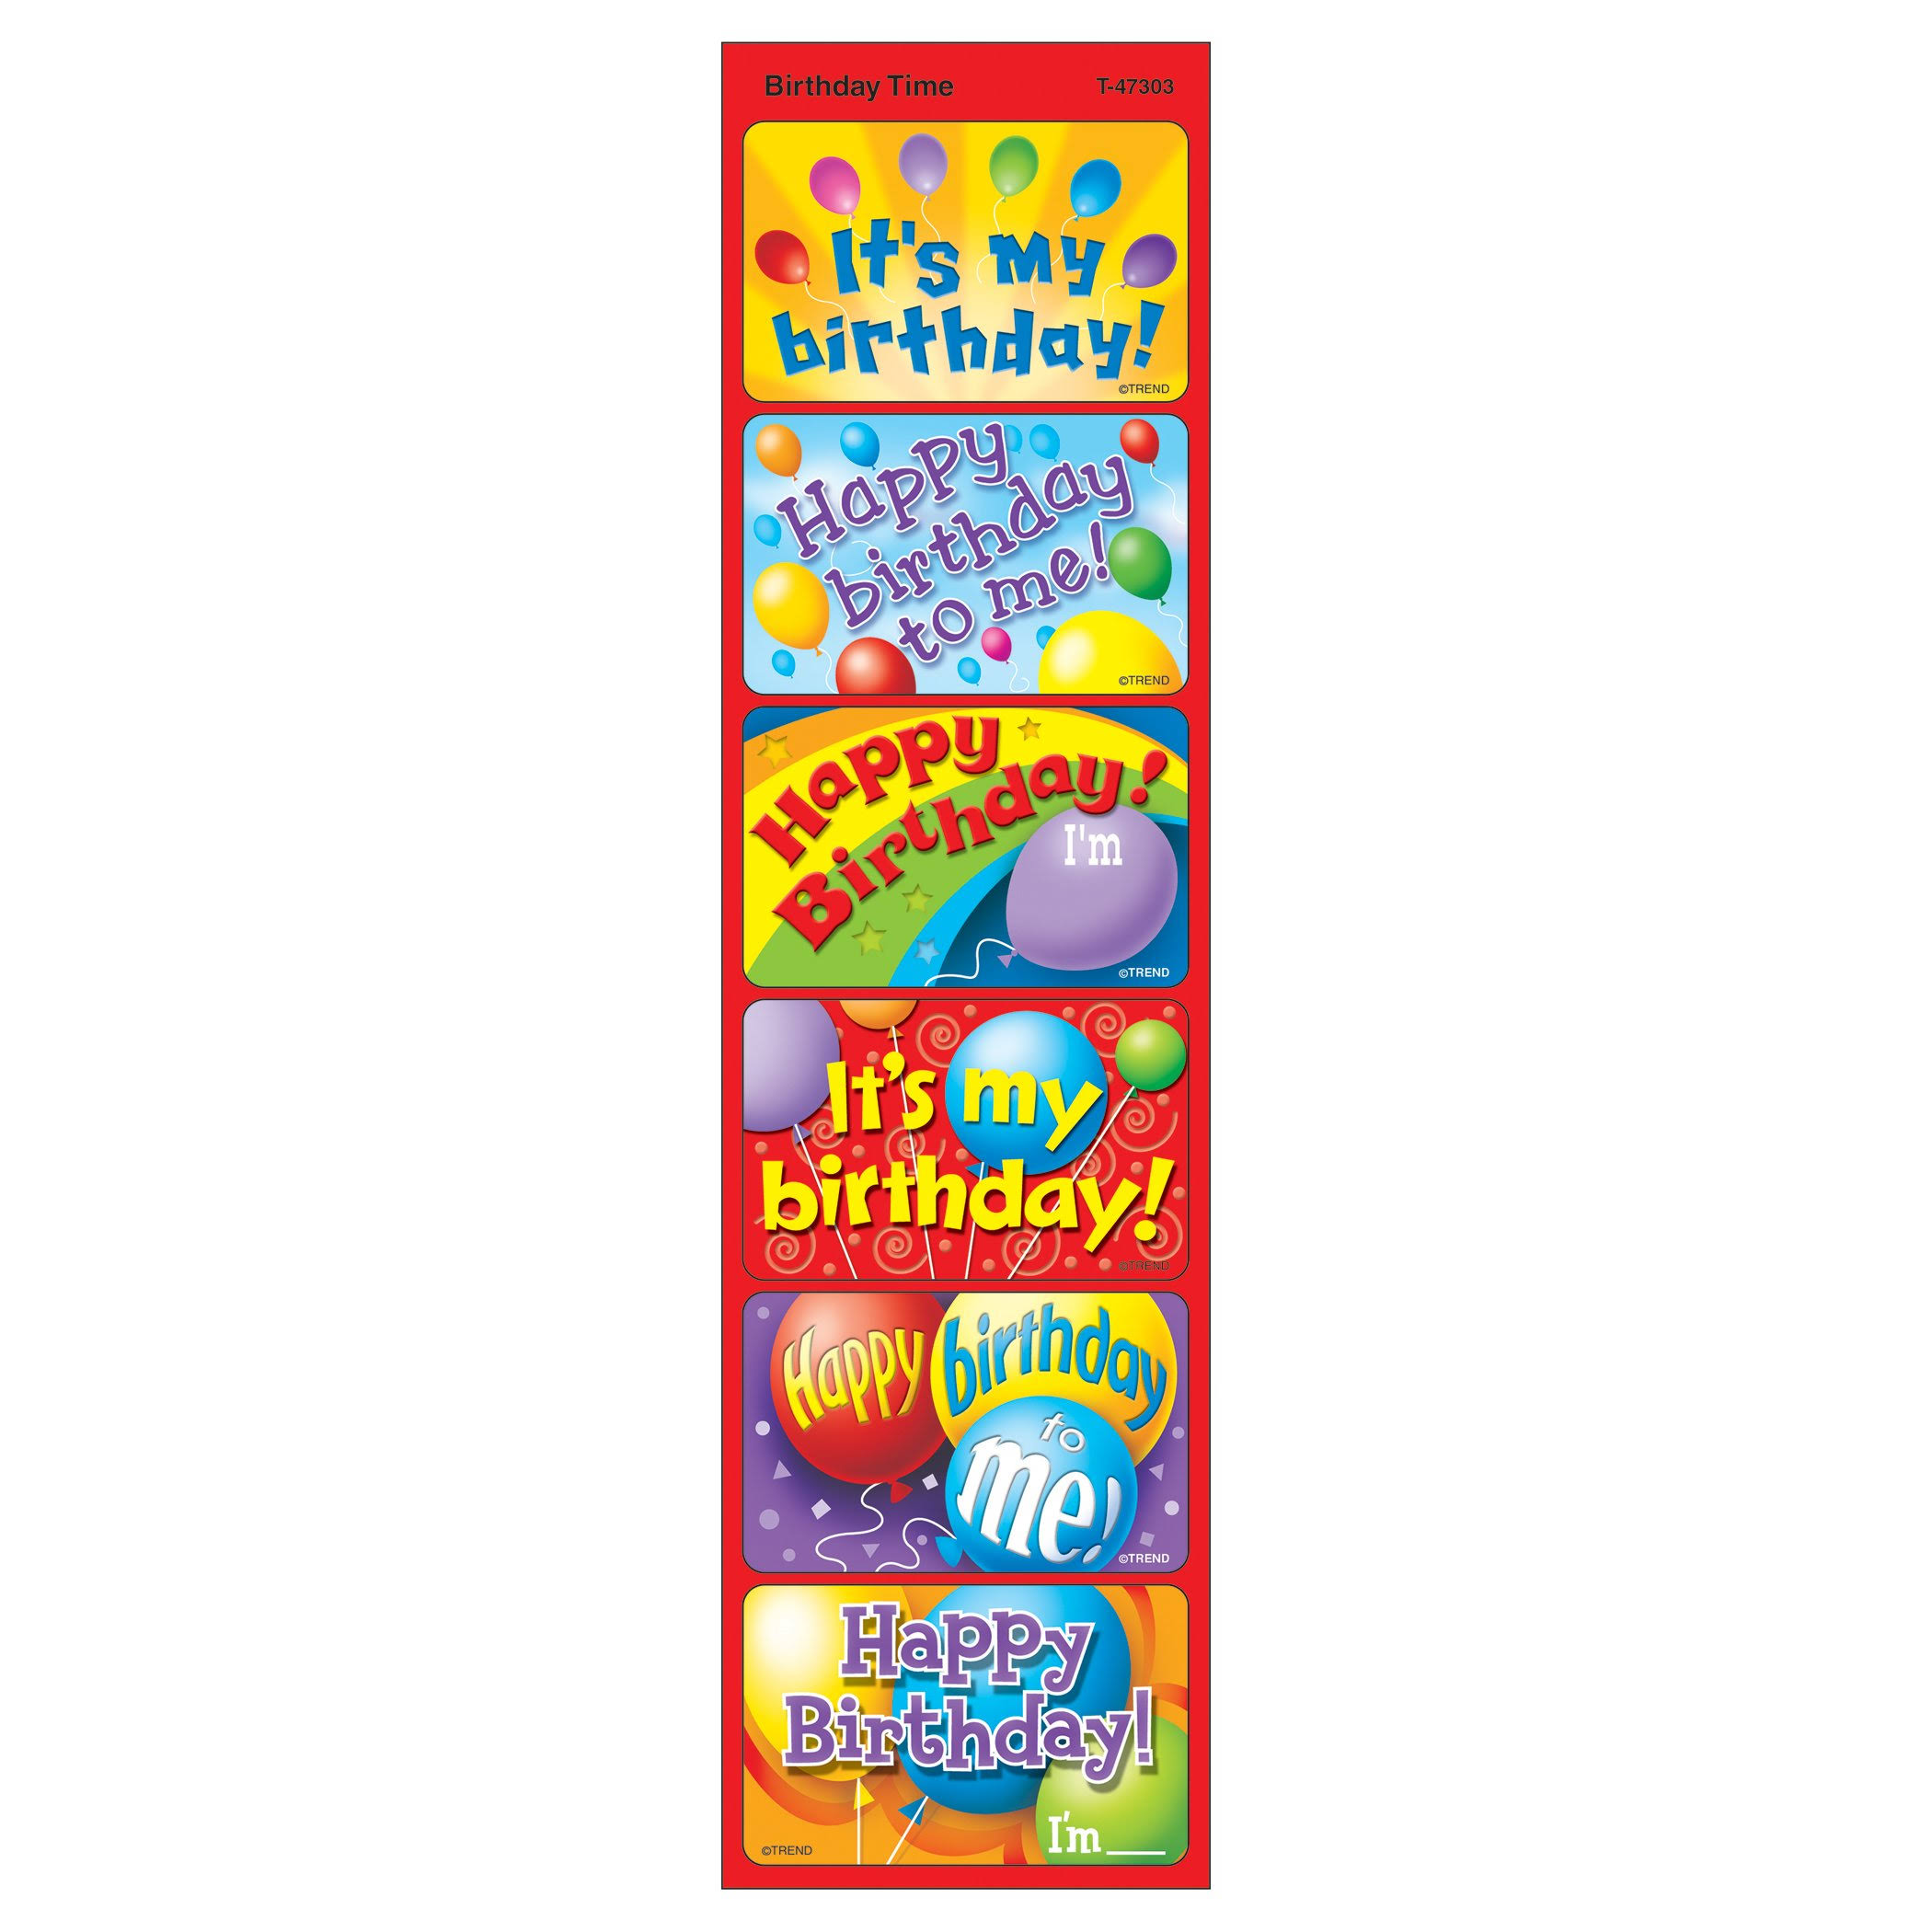 Trend Enterprises Applause Stickers - Birthday Time